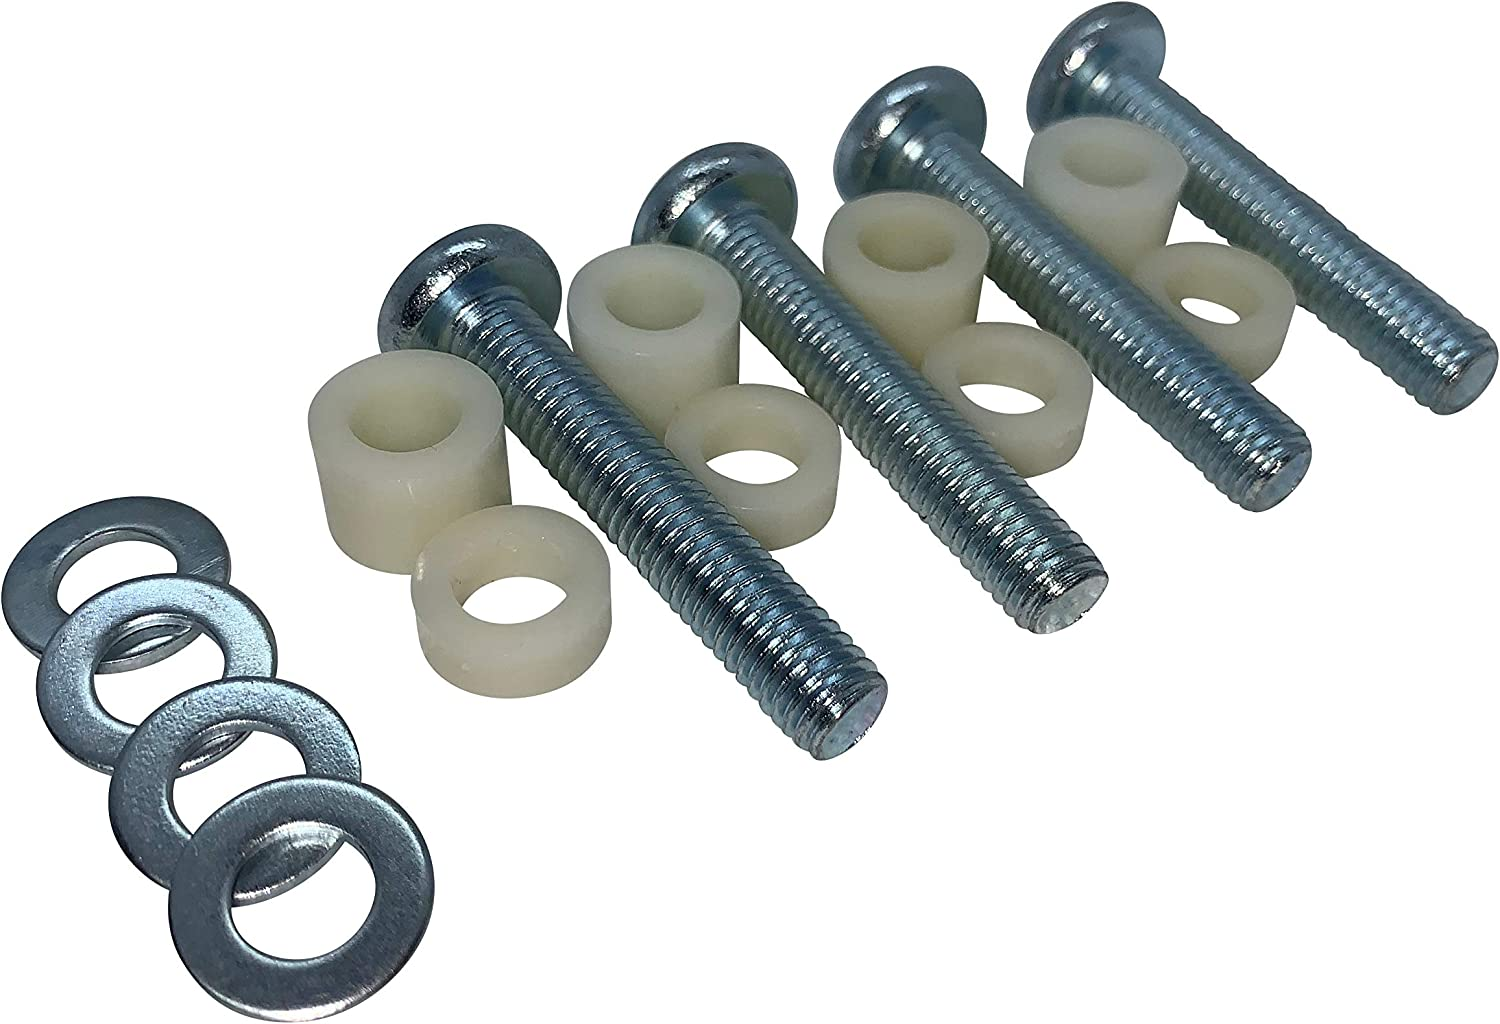 M8x45mm Bolt kit for Wall mounting Samsung TVs. Screws, washers and spacers Included